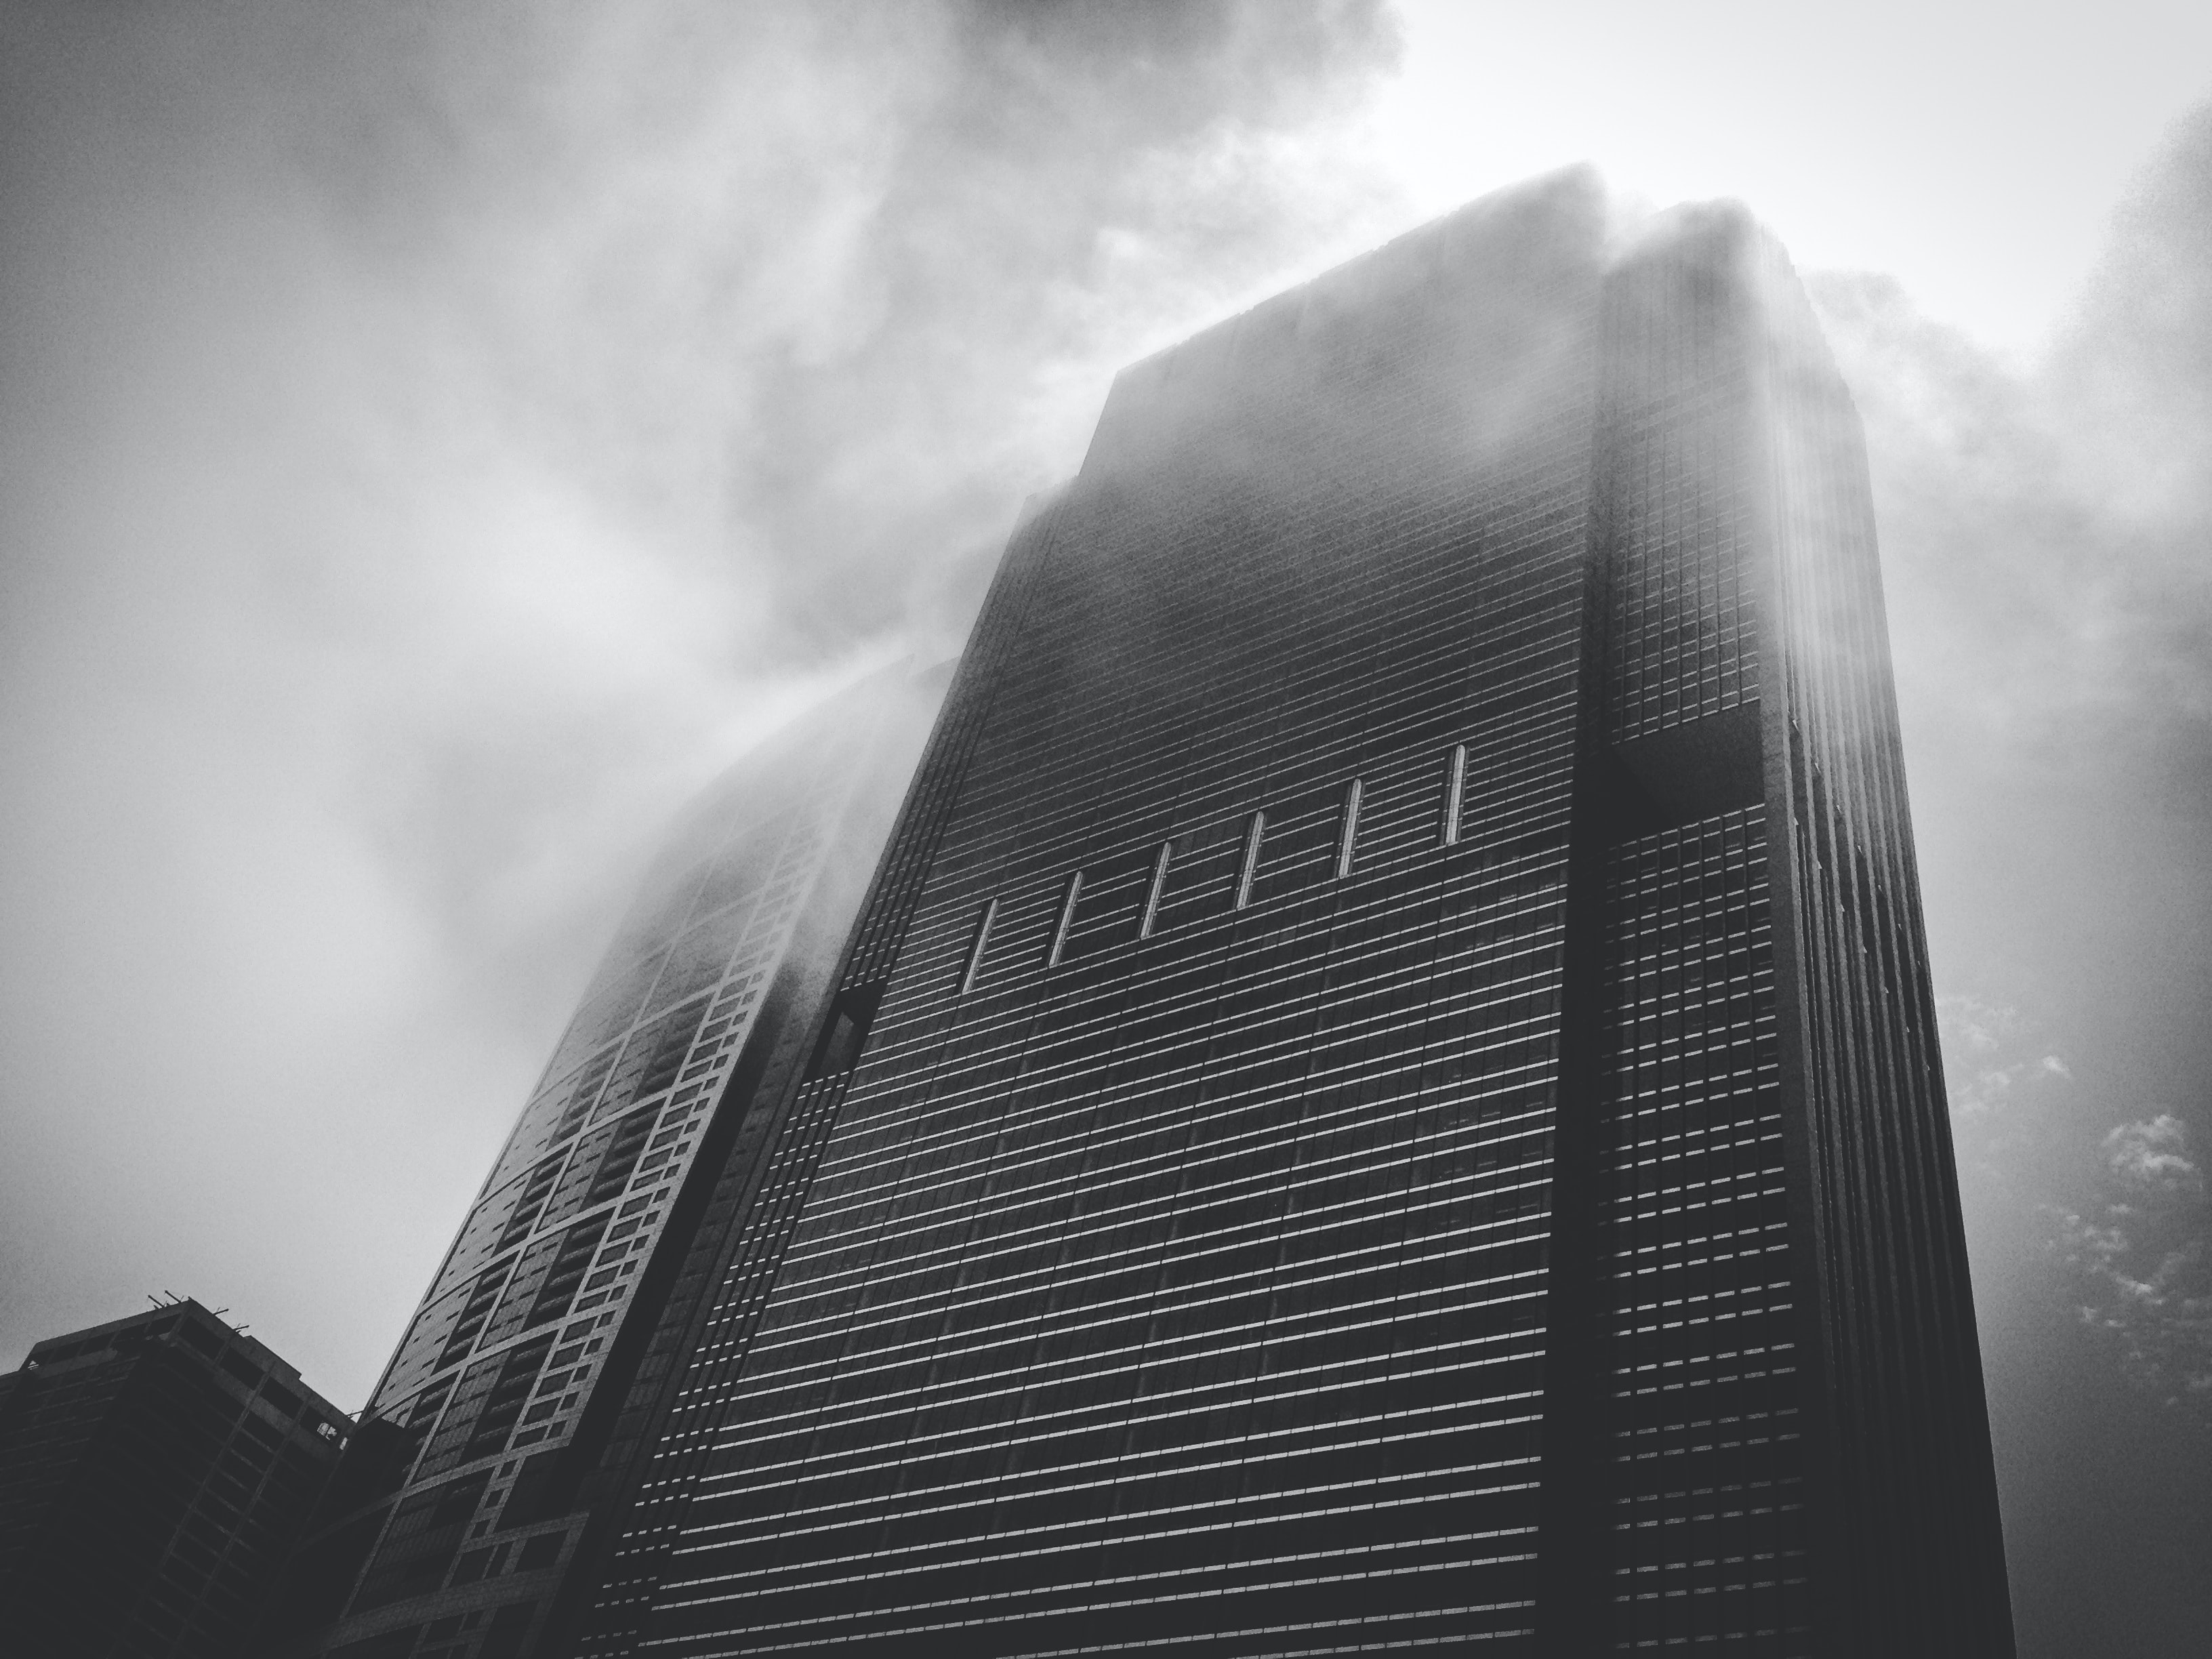 A black skyscraper shrouded in mist on a cloudy day